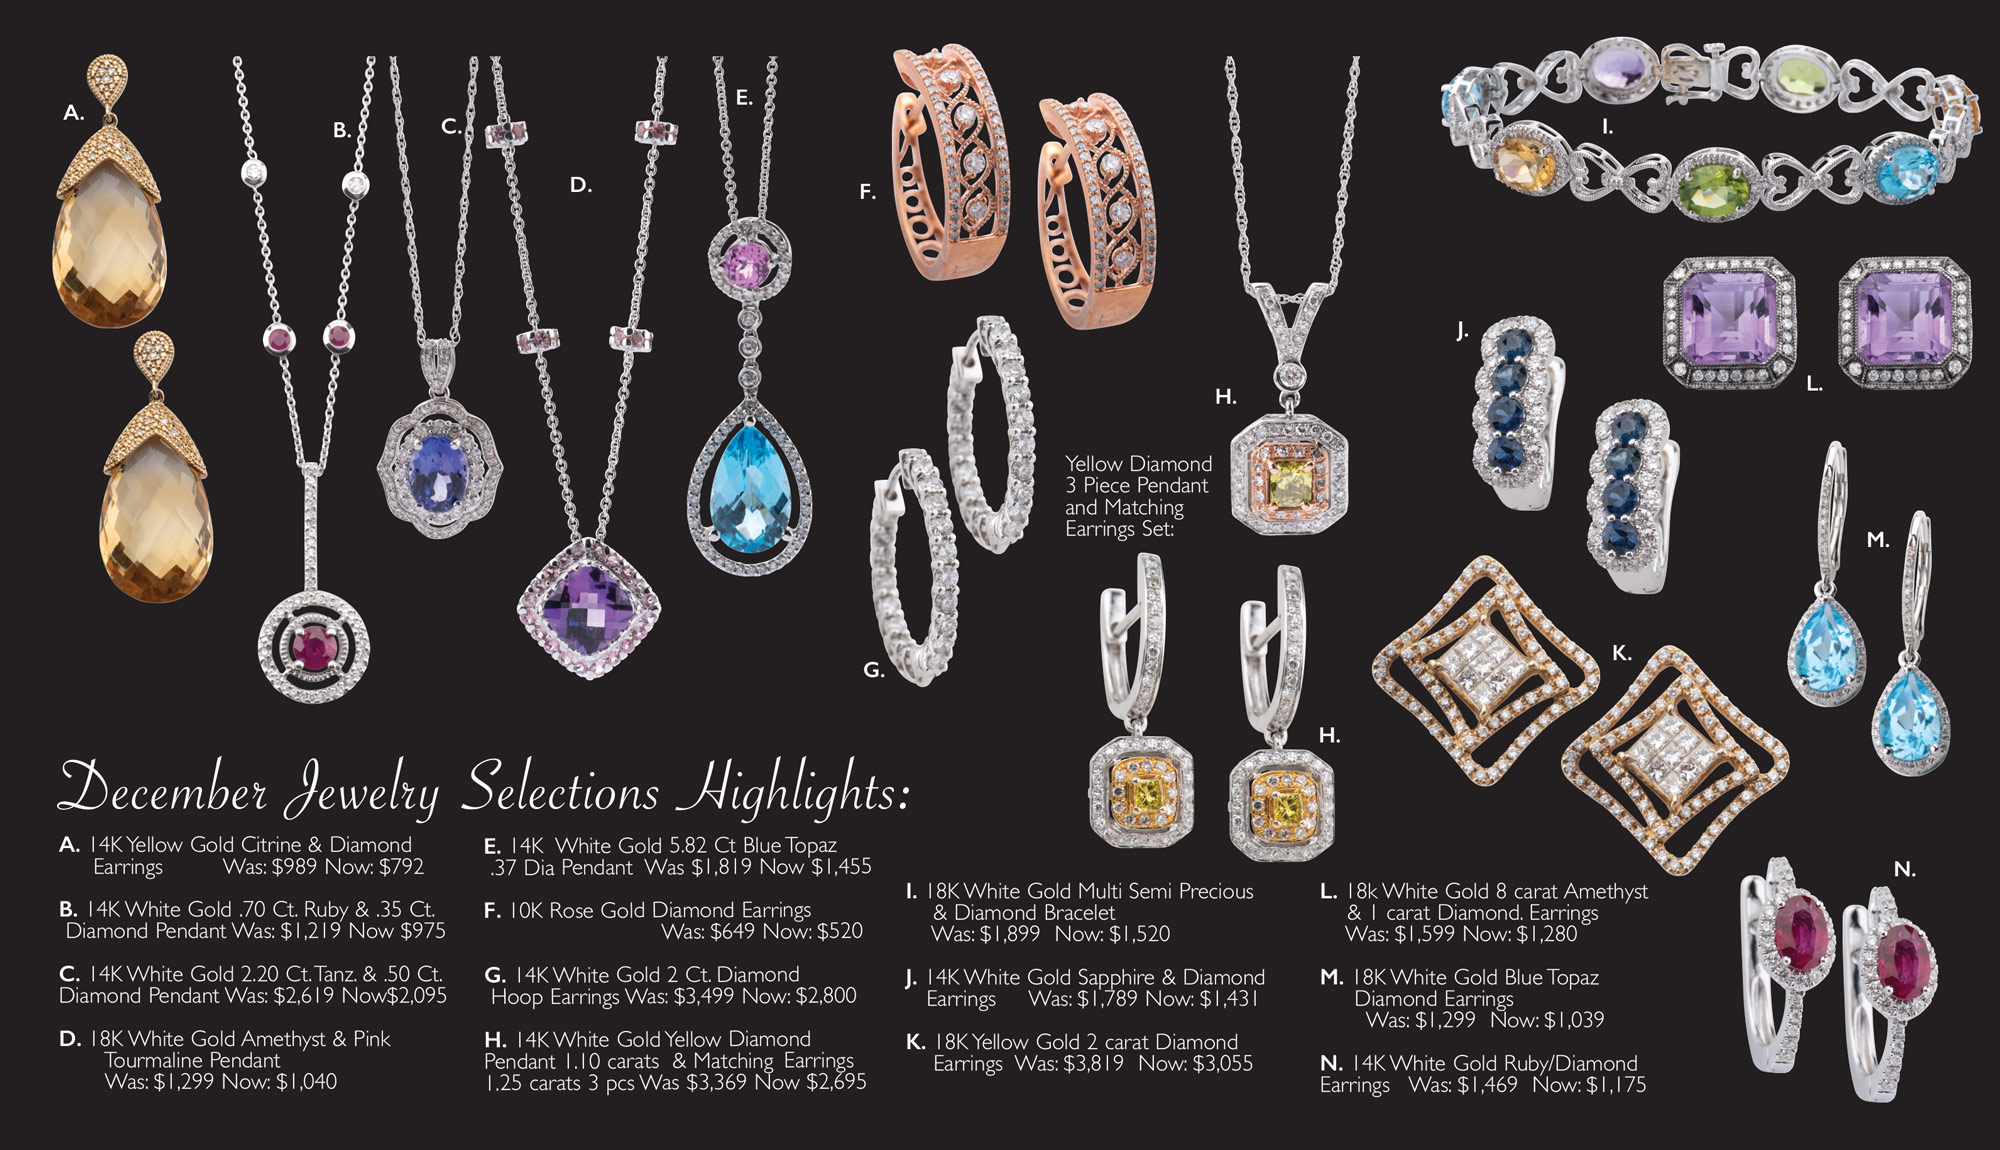 December Jewelry Sale Page 3